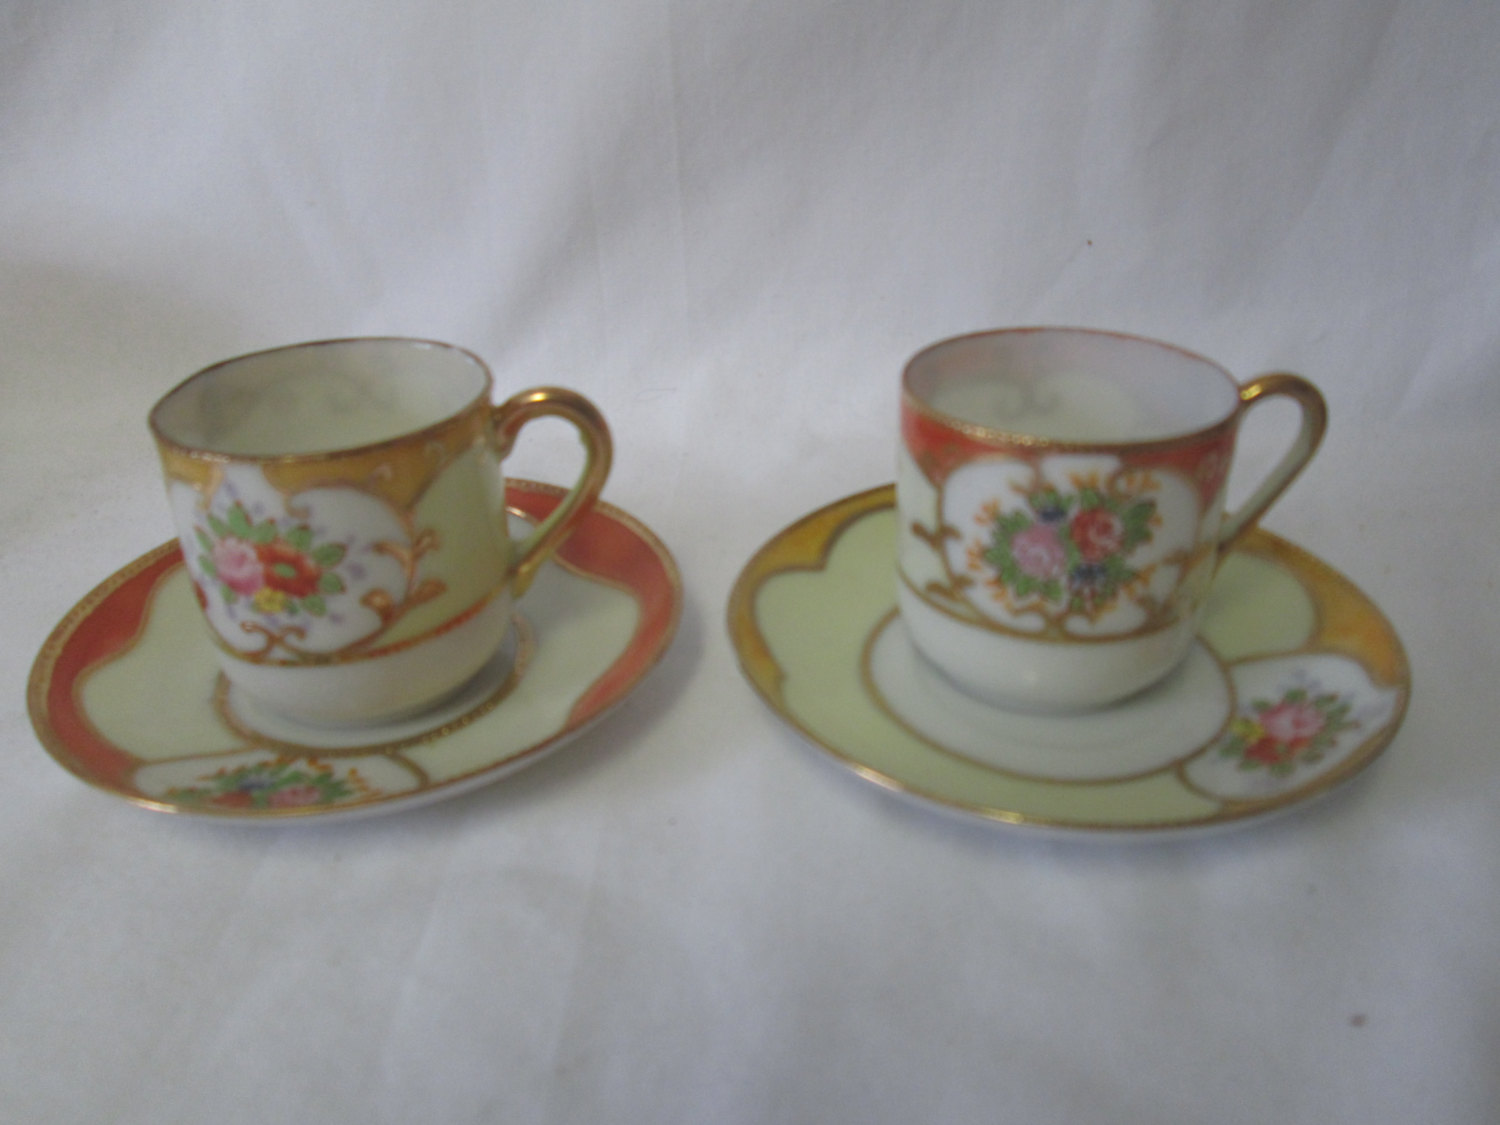 Vintage Ornate Gold Trimmed Pair of Occupied Japan Bone China Tea Cups and  Saucers